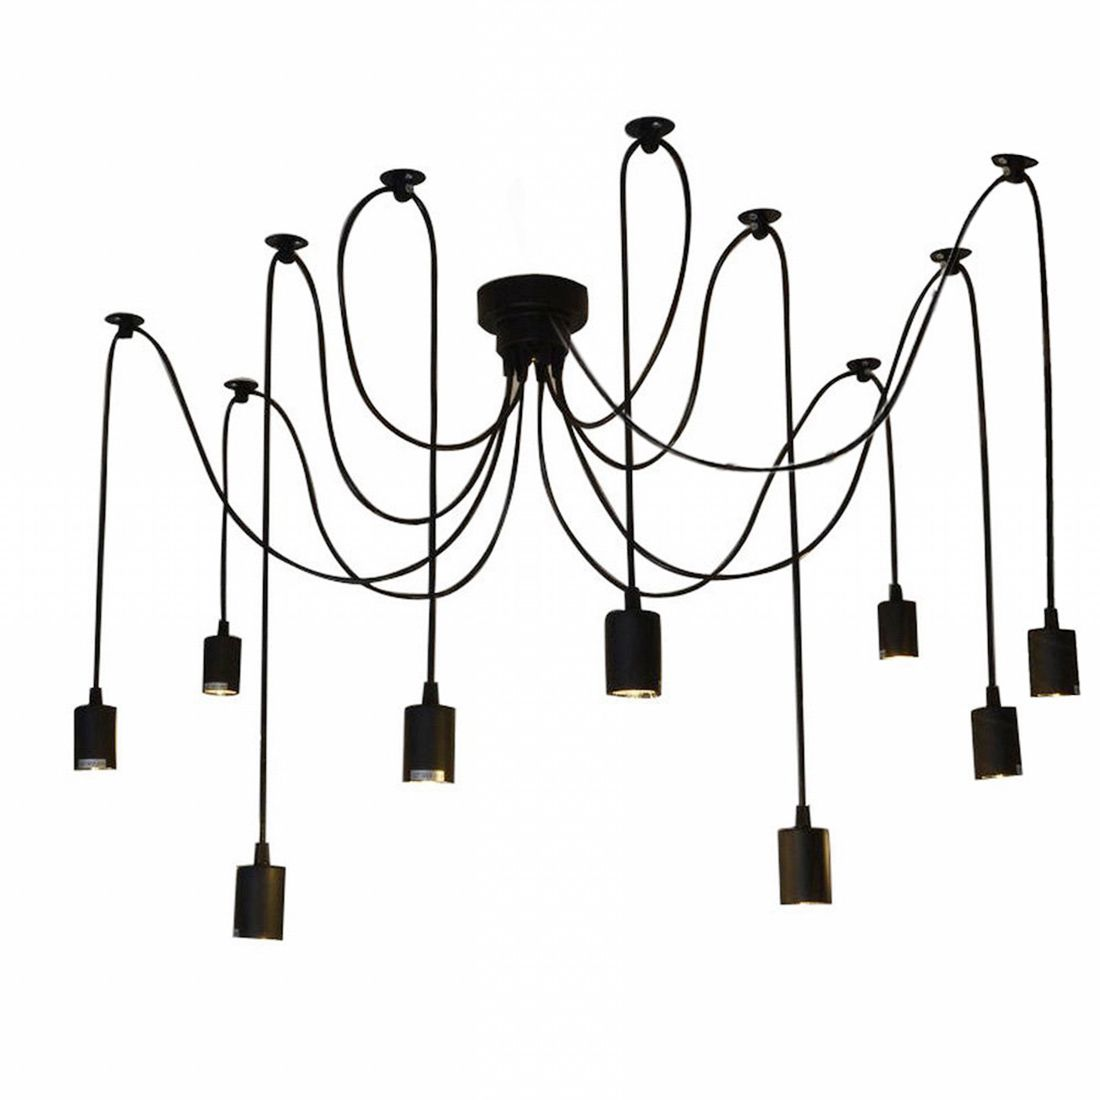 BIFI-9 Lights E27 DIY Ceiling Spider Pendant Lamp Shade Light Antique Classic Adjustable Retro Chandelier Dining Hall Bedroom 9lights e27 diy ceiling spider pendant lamp shade light antique classic adjustable retro chandelier dining home lighting fixture